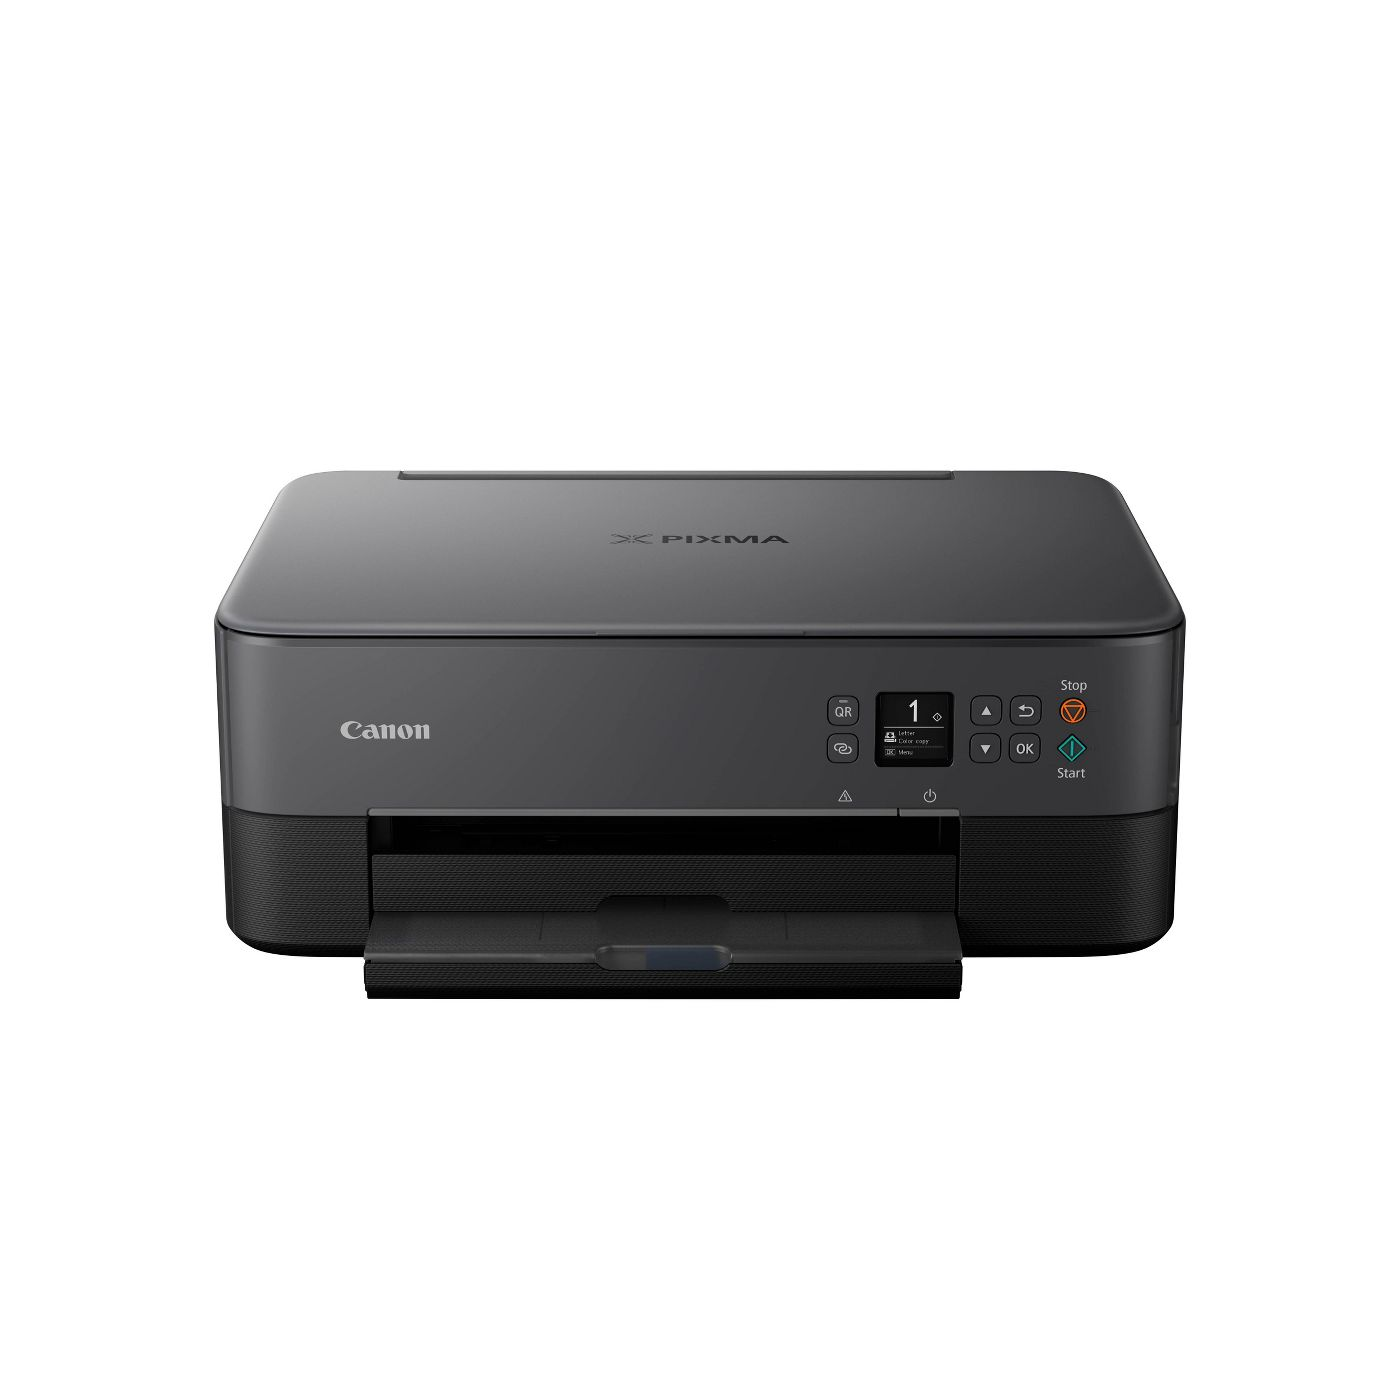 Canon TS5320 Wireless Color Inkjet All-in-One Printer with Duplex